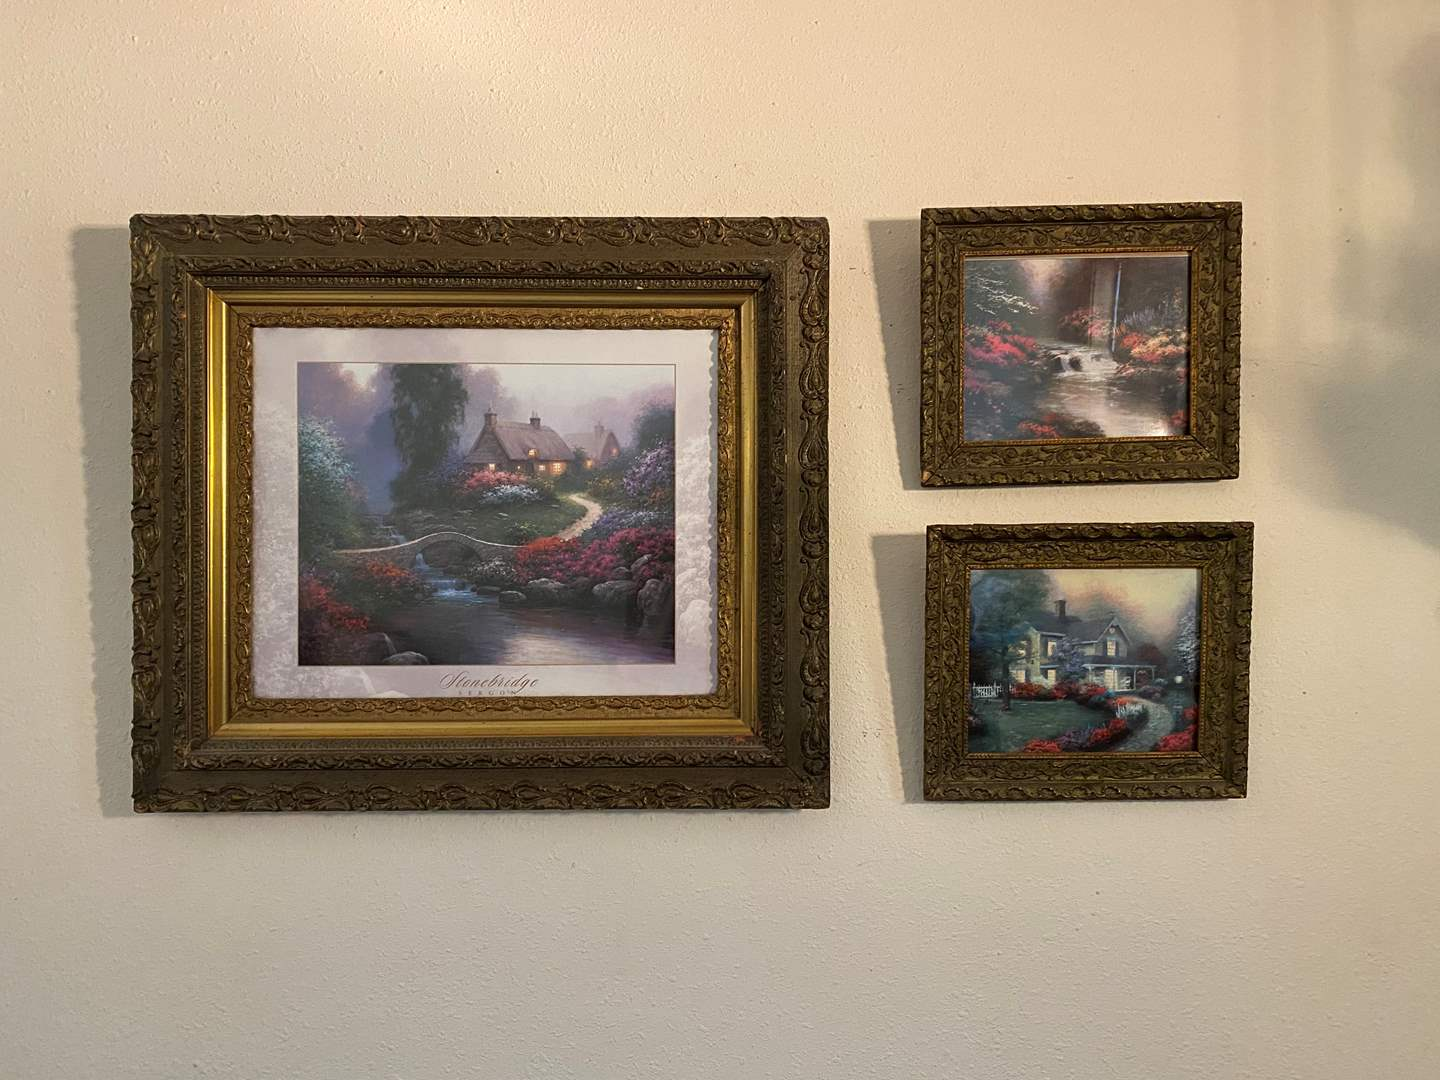 Lot # 7 - Three Pieces of Wall Art - Framed in Vintage/Antique Wood Frames (main image)